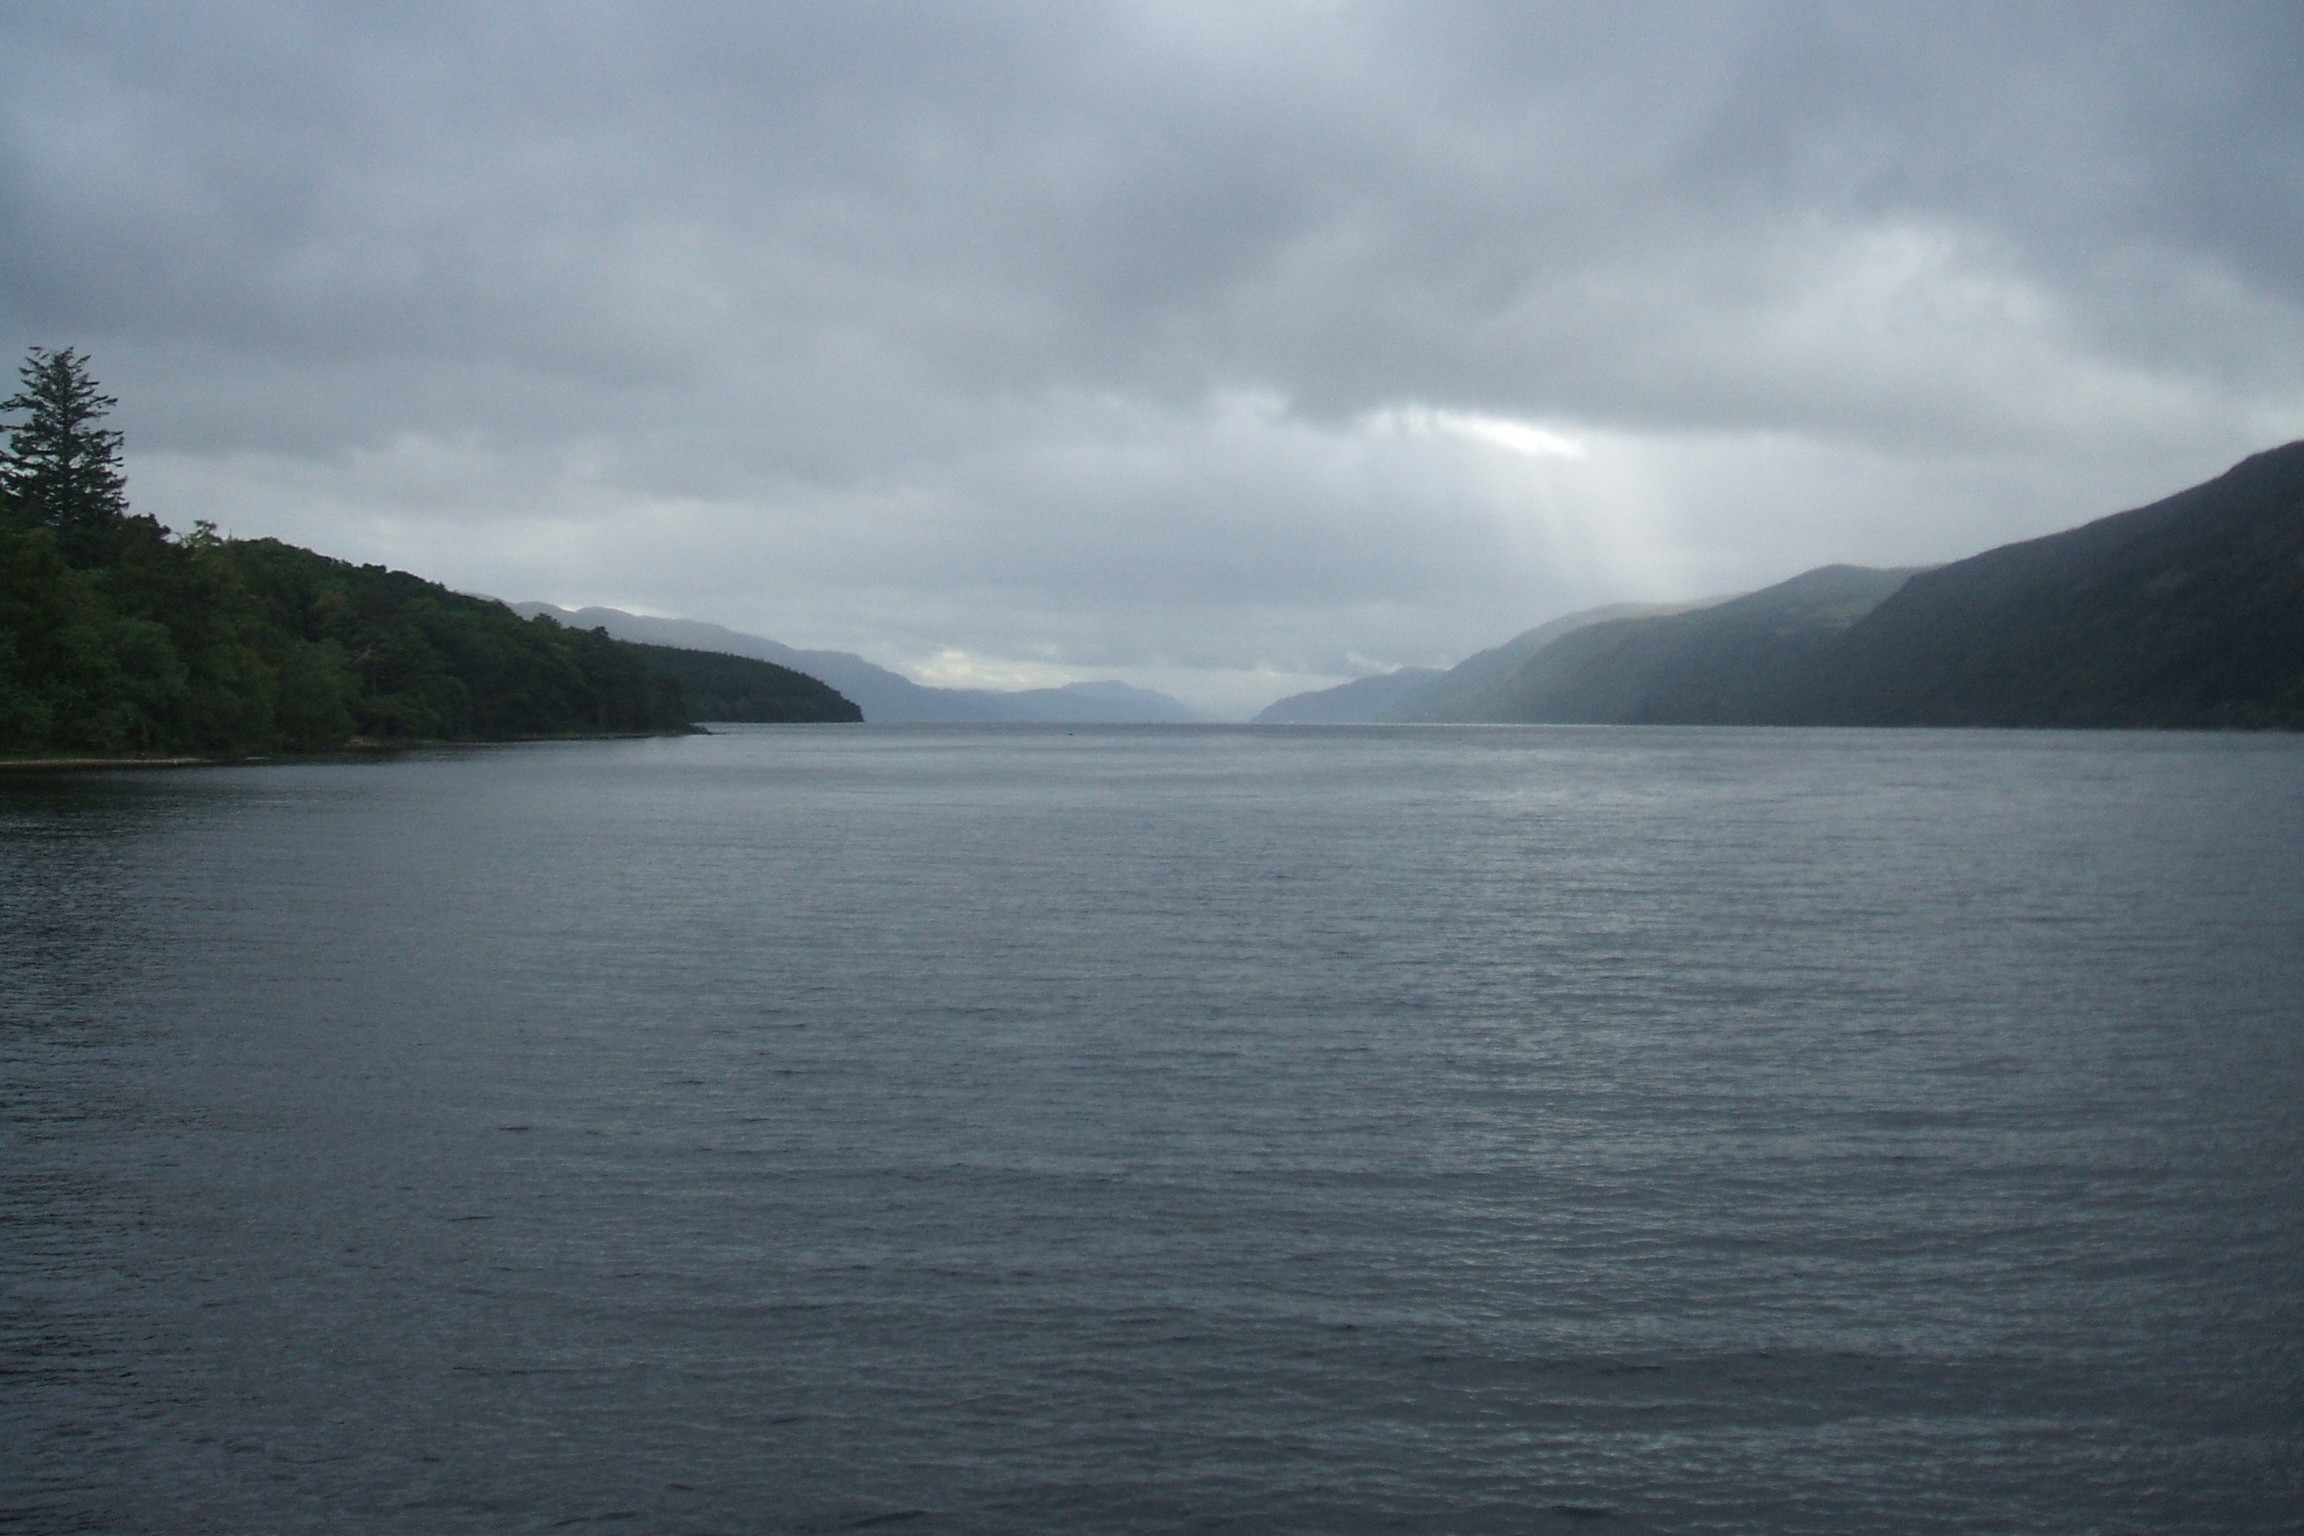 2304x1536 Lake Loch Ness Wallpapers, 48 Lake Loch Ness Backgrounds .